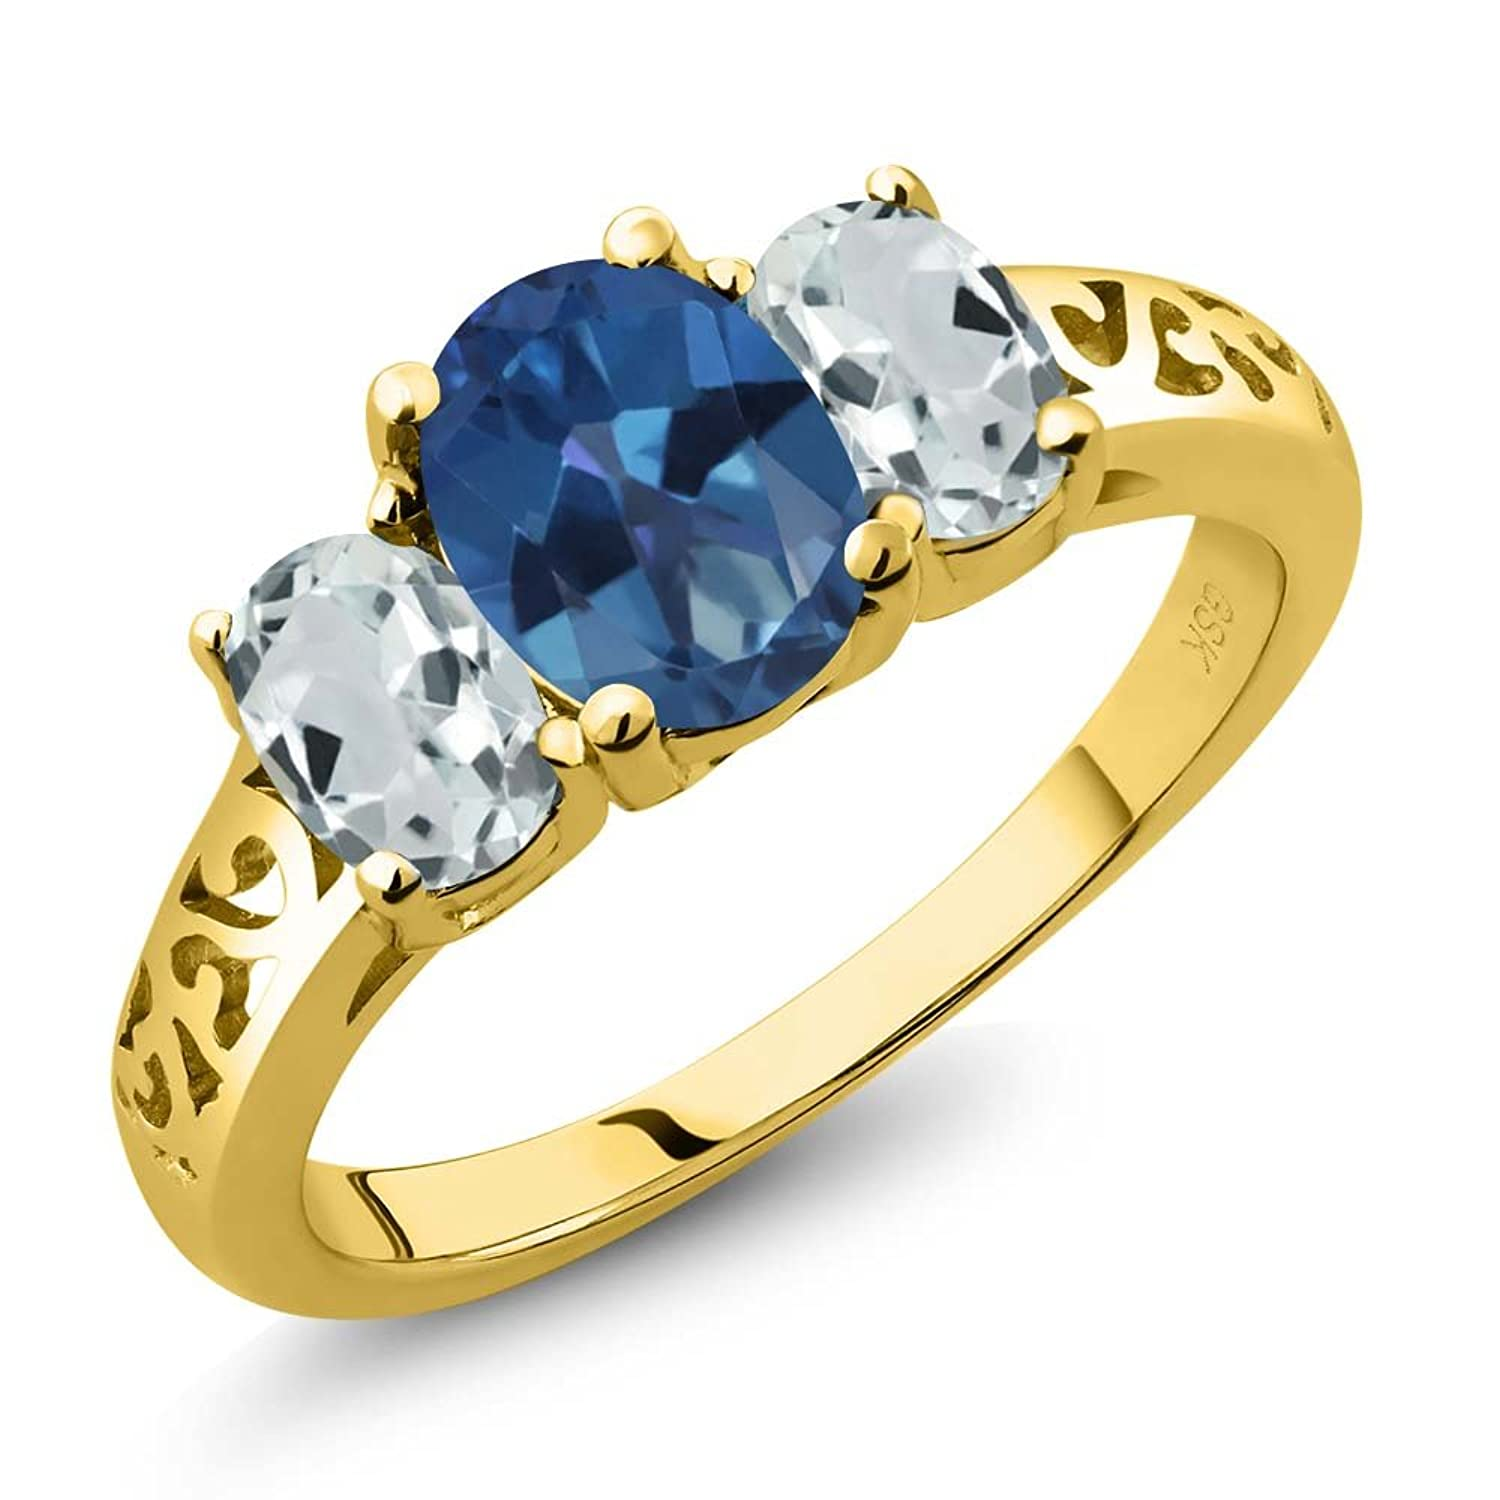 fashion royal cheap jewelry silver product online stone blue aeproduct rings still getsubject here